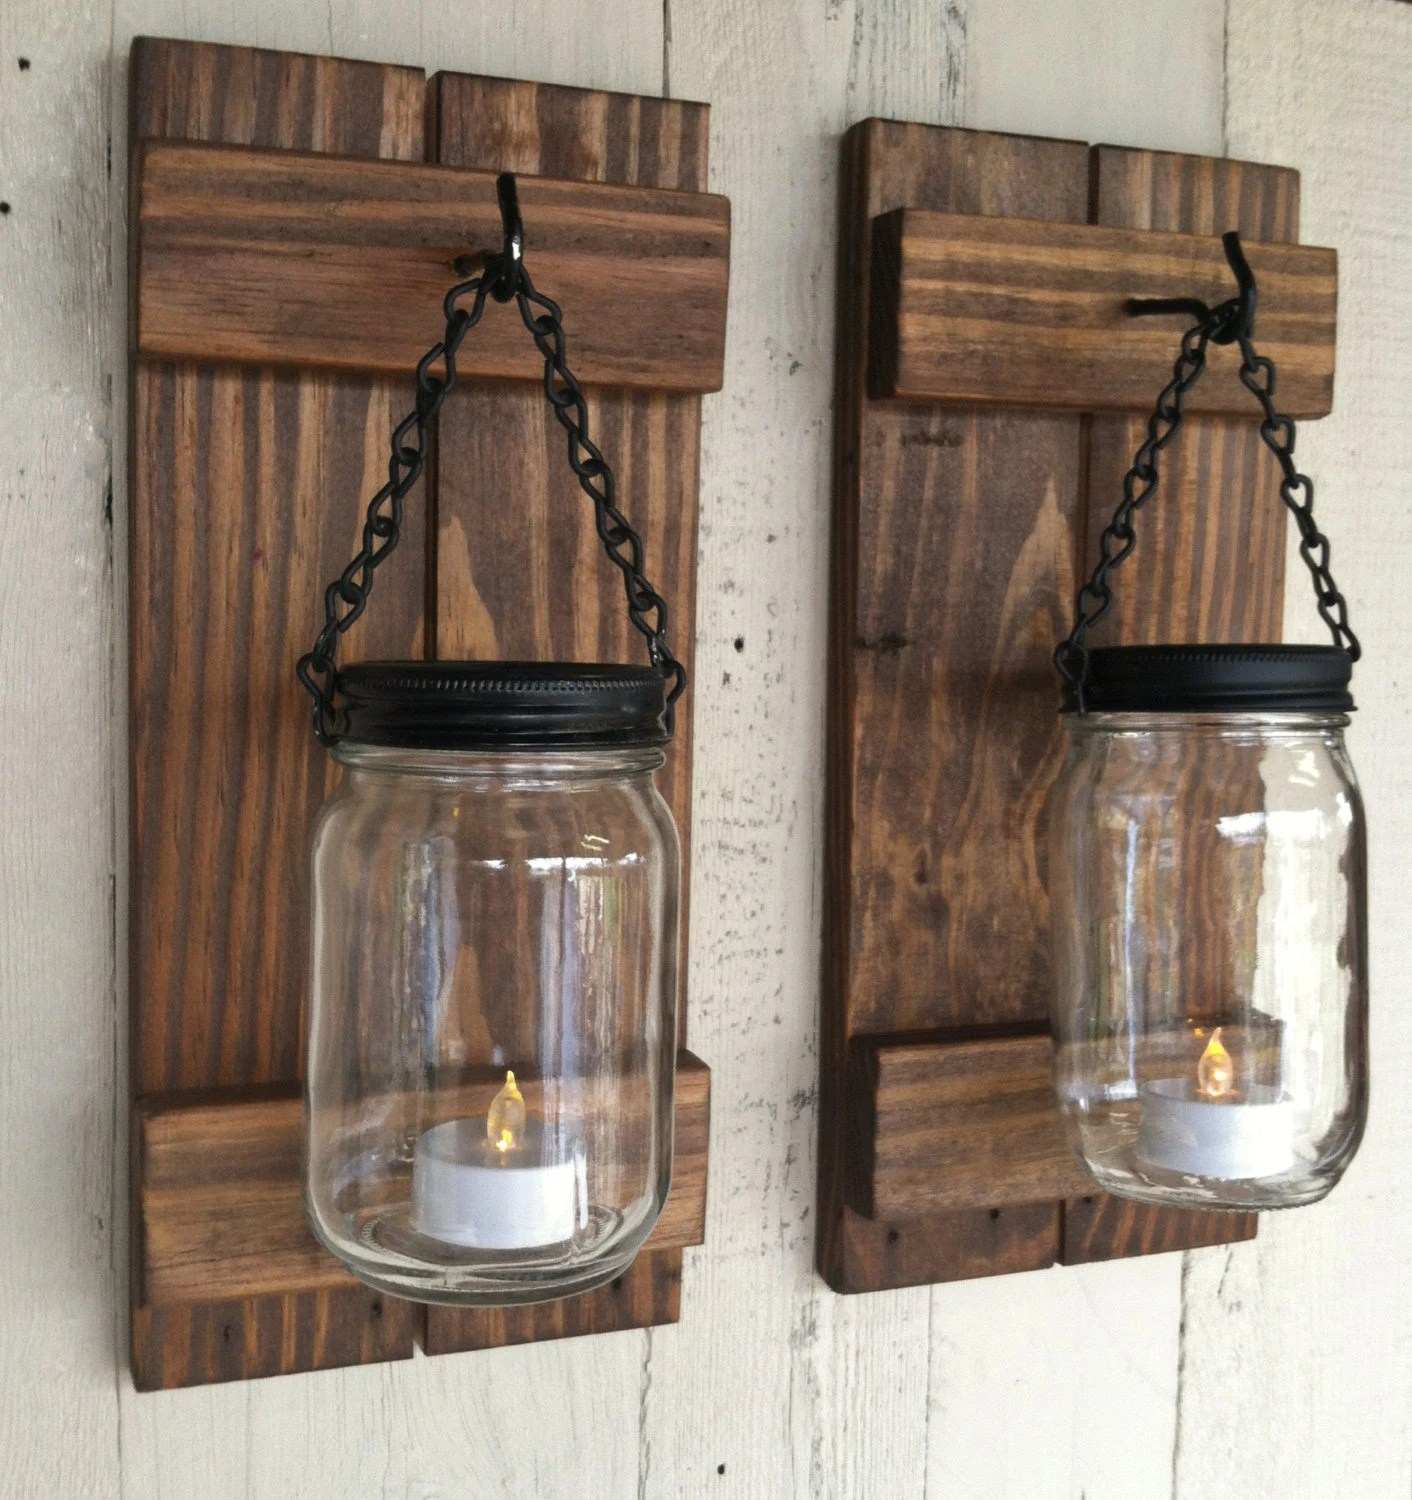 Mason Jar Candle Holders Reclaimed Wood Wall By Lowerarkcrafts